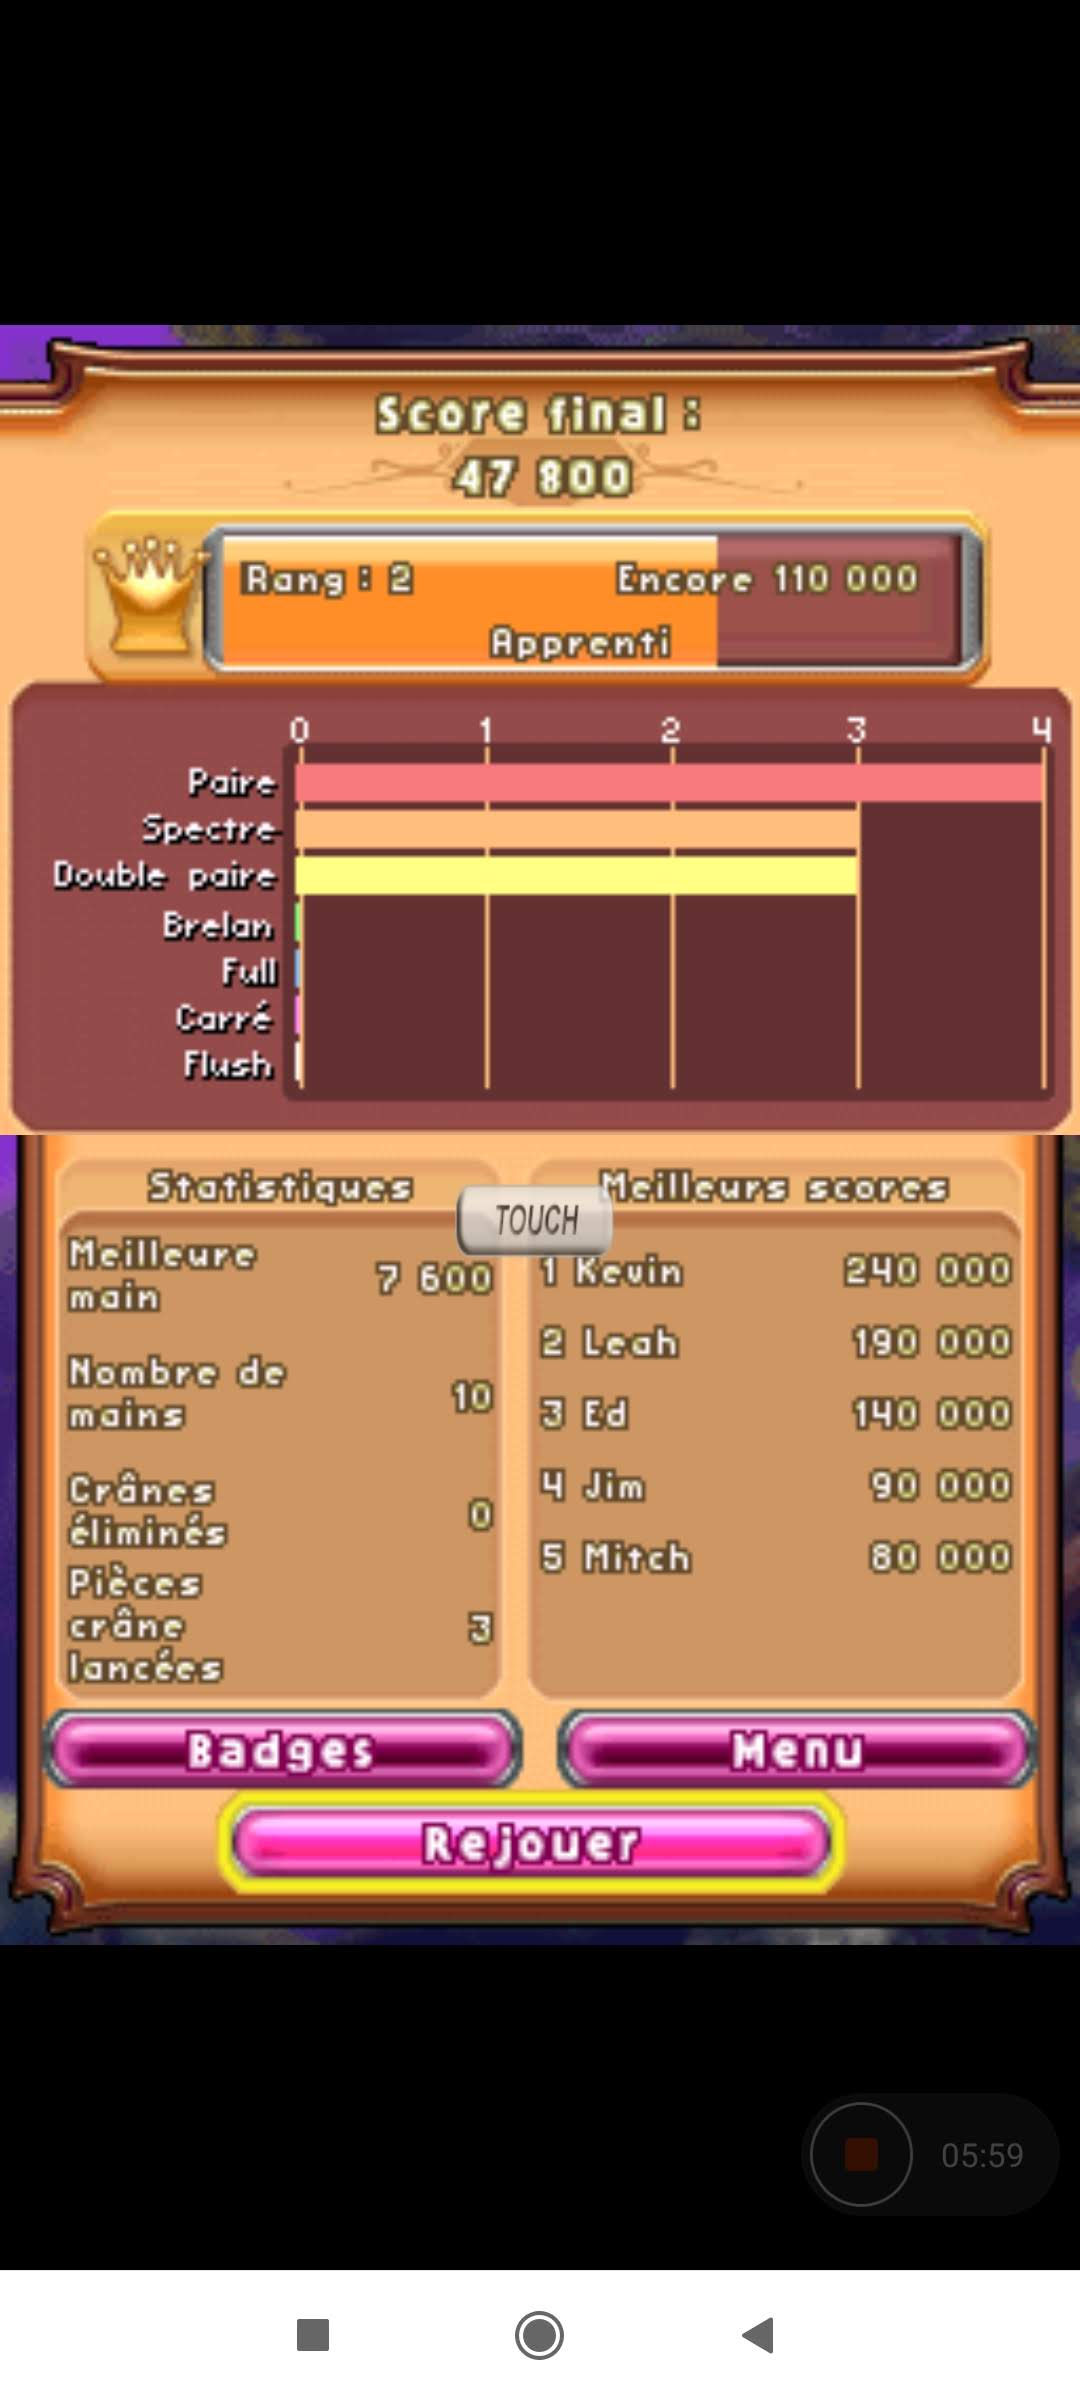 Larquey: Bejeweled 3: Poker [Number of 4 of a Kind] (Nintendo DS Emulated) 0 points on 2020-09-26 03:33:10